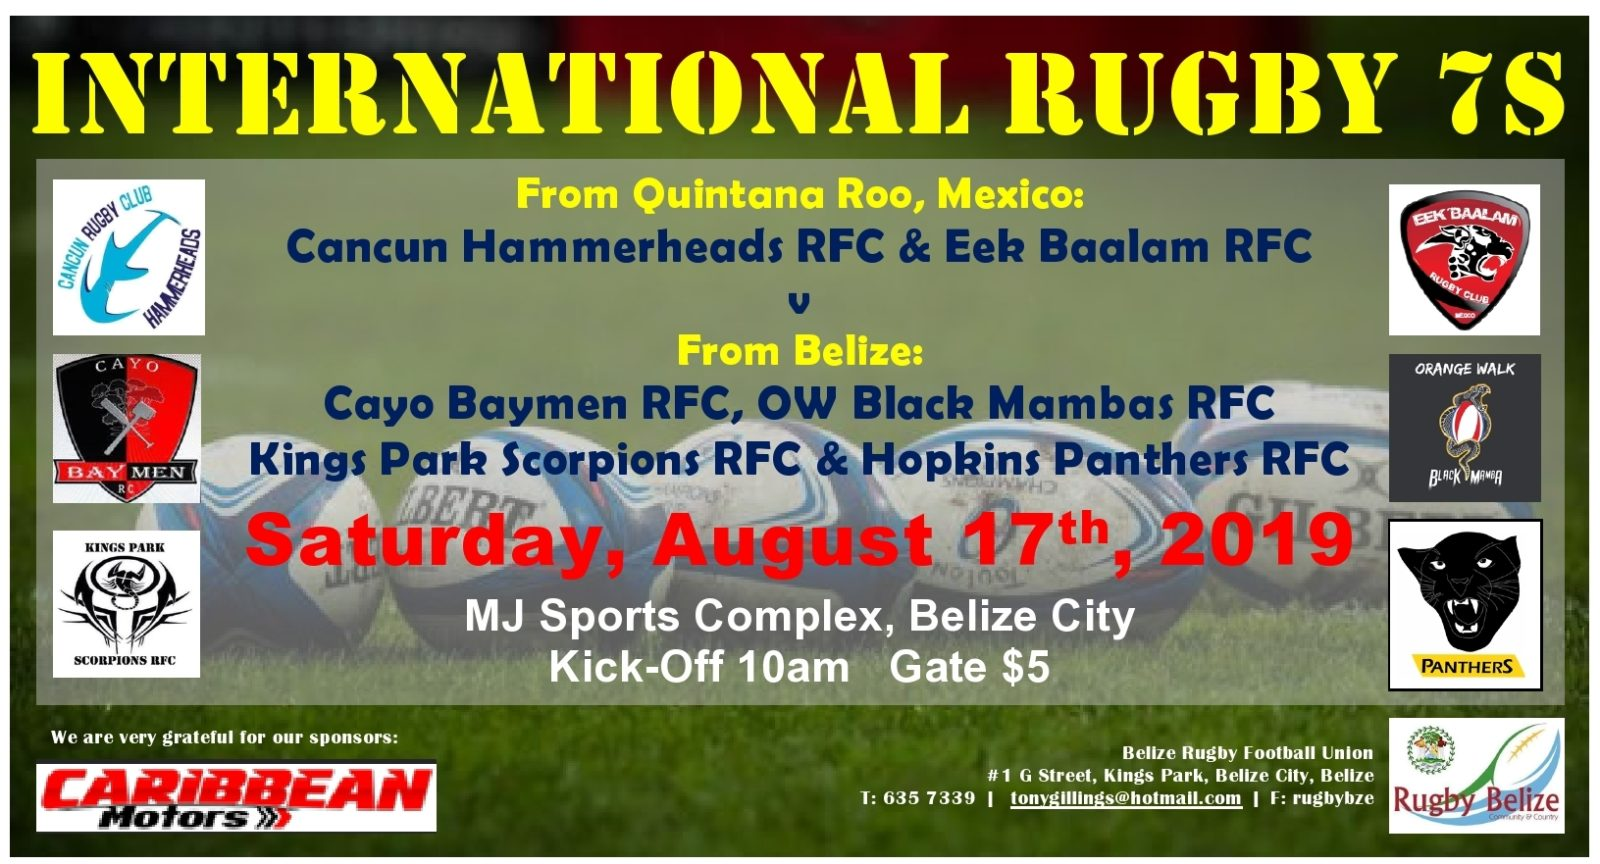 Belize's rugby league continues to make history